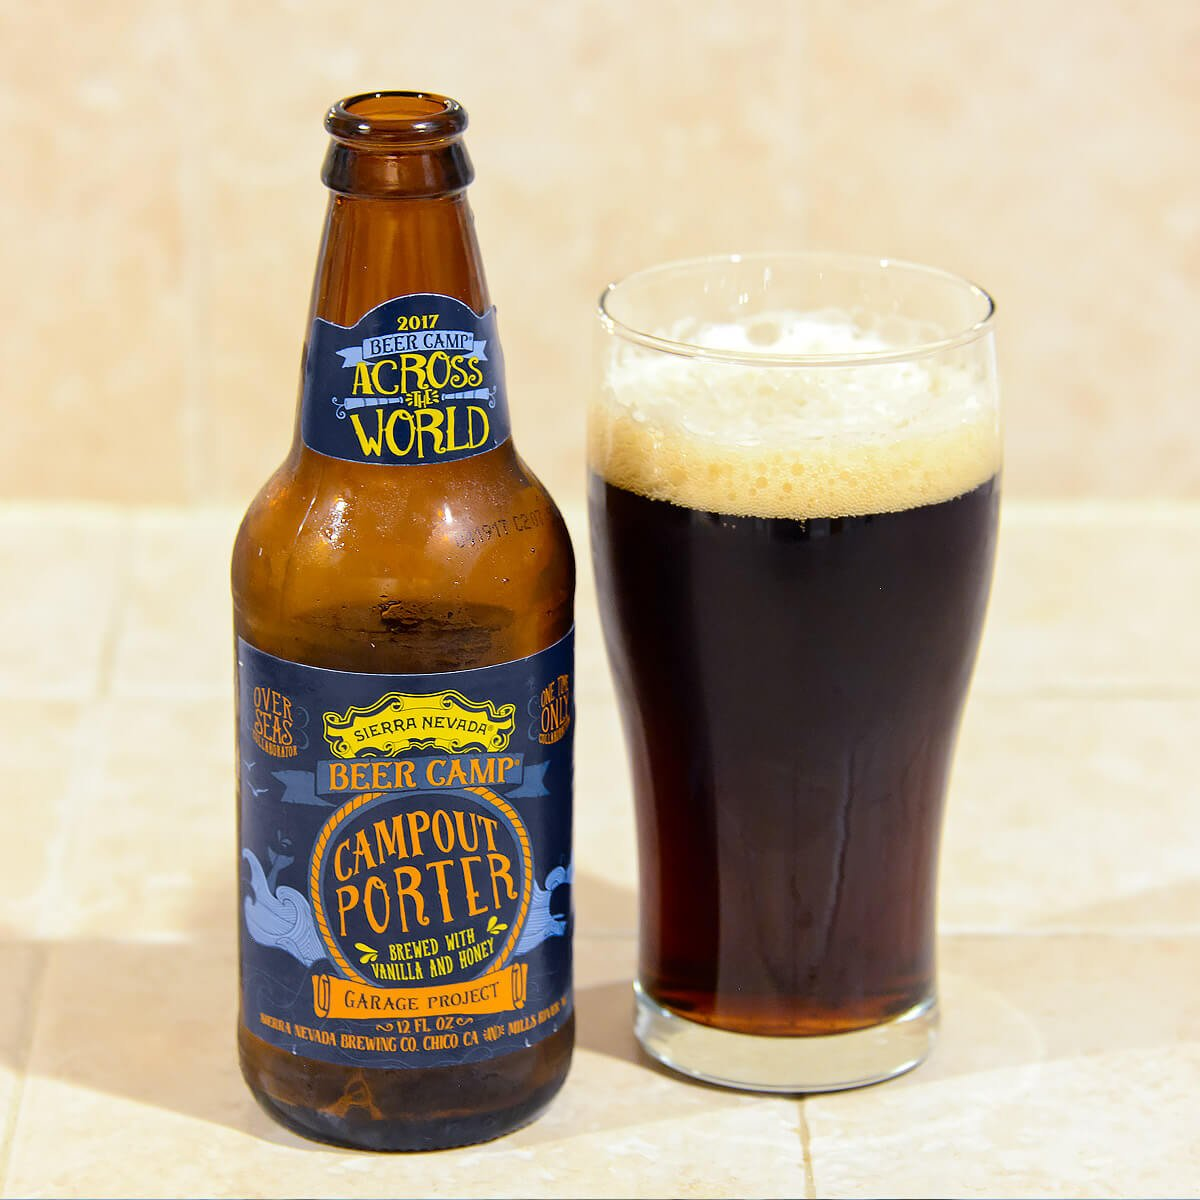 Campout Porter, an American Porter by Sierra Nevada Brewing Co. and Garage Project